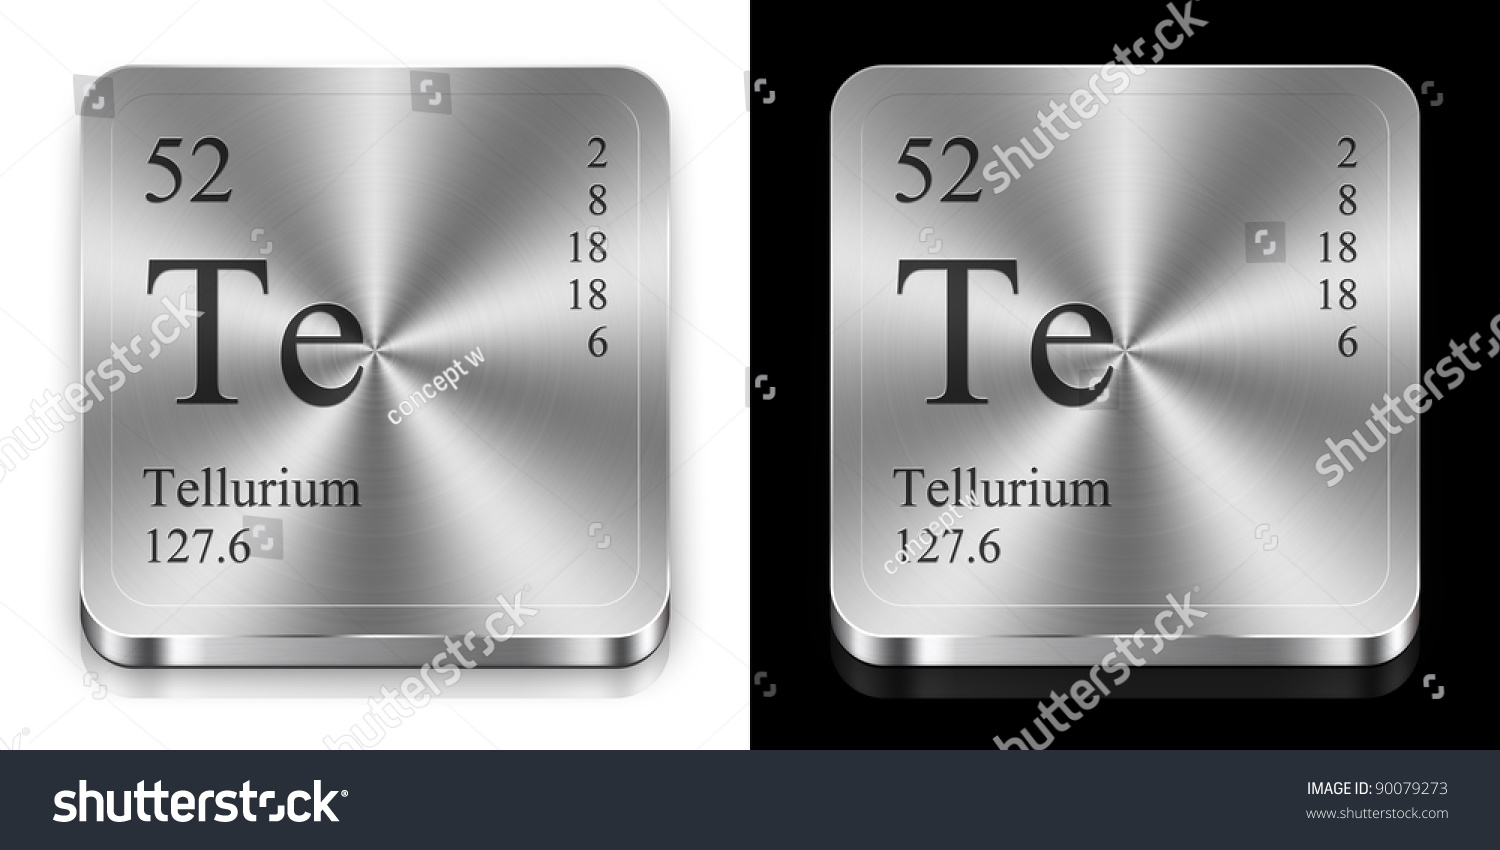 Tellurium element periodic table two steel stock illustration tellurium element of the periodic table two steel web buttons gamestrikefo Choice Image